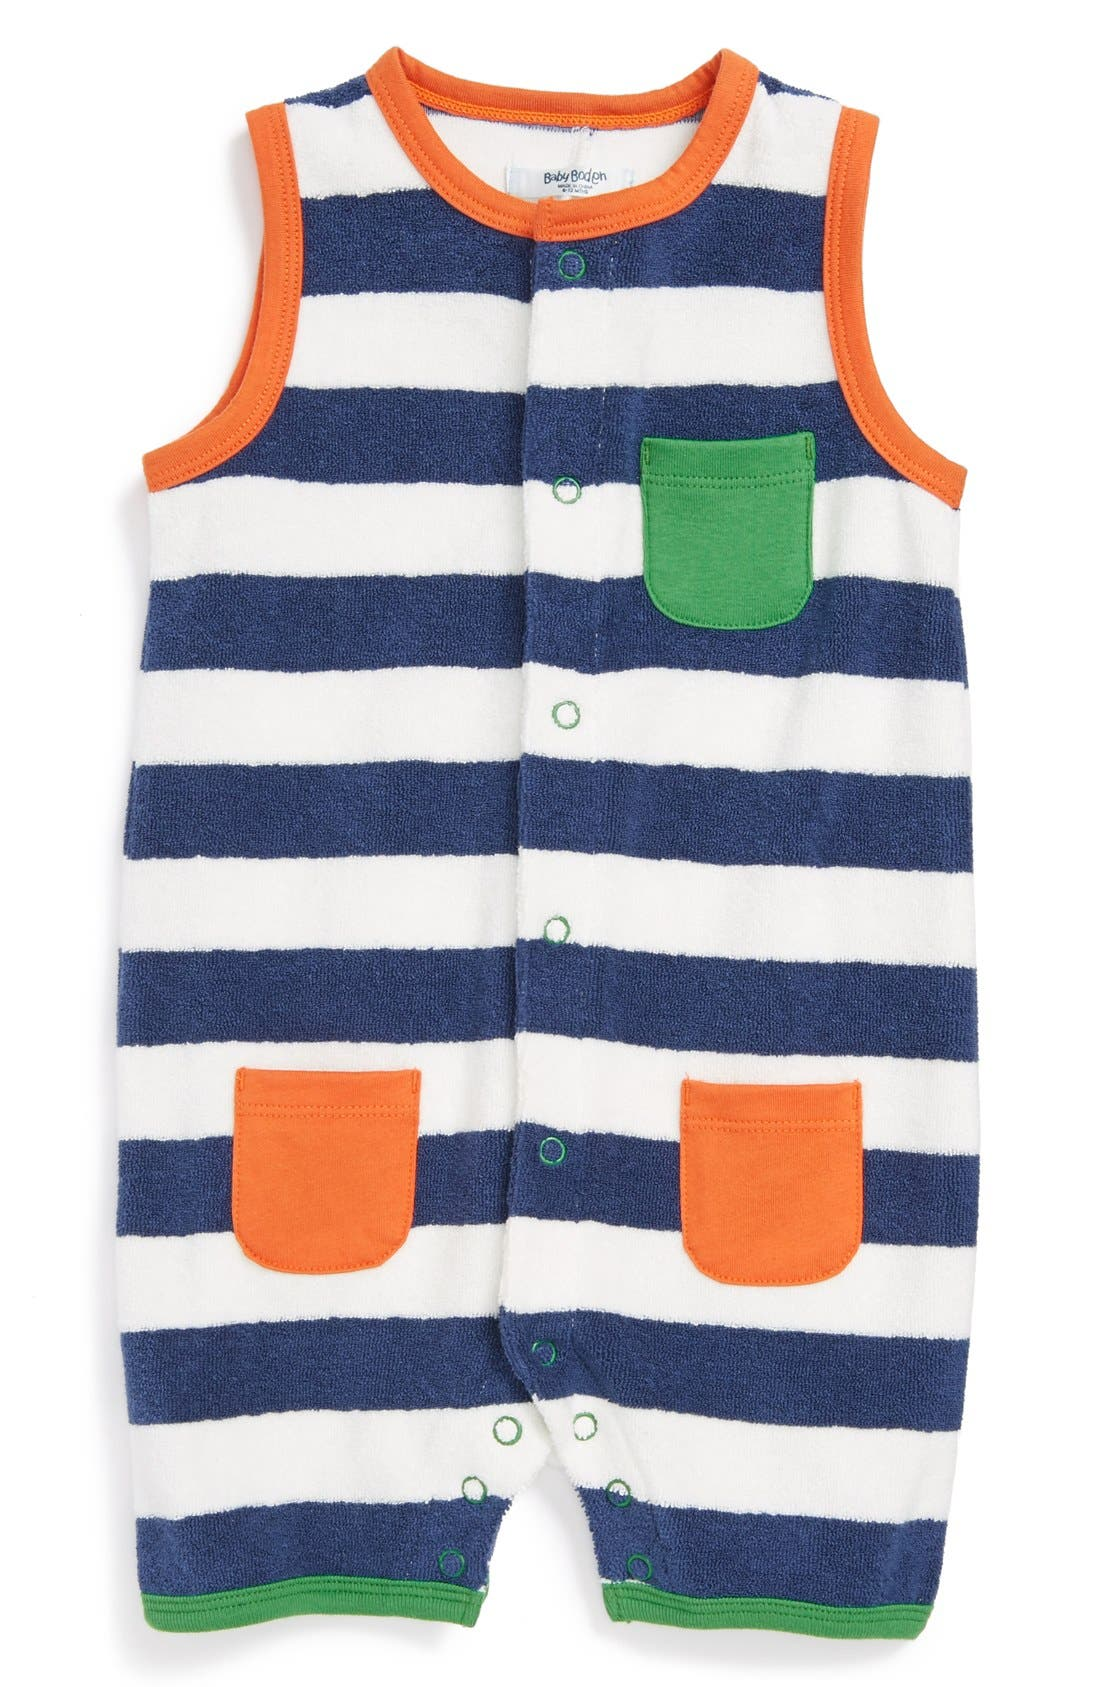 Alternate Image 1 Selected - Mini Boden Terry Cloth Romper (Baby)